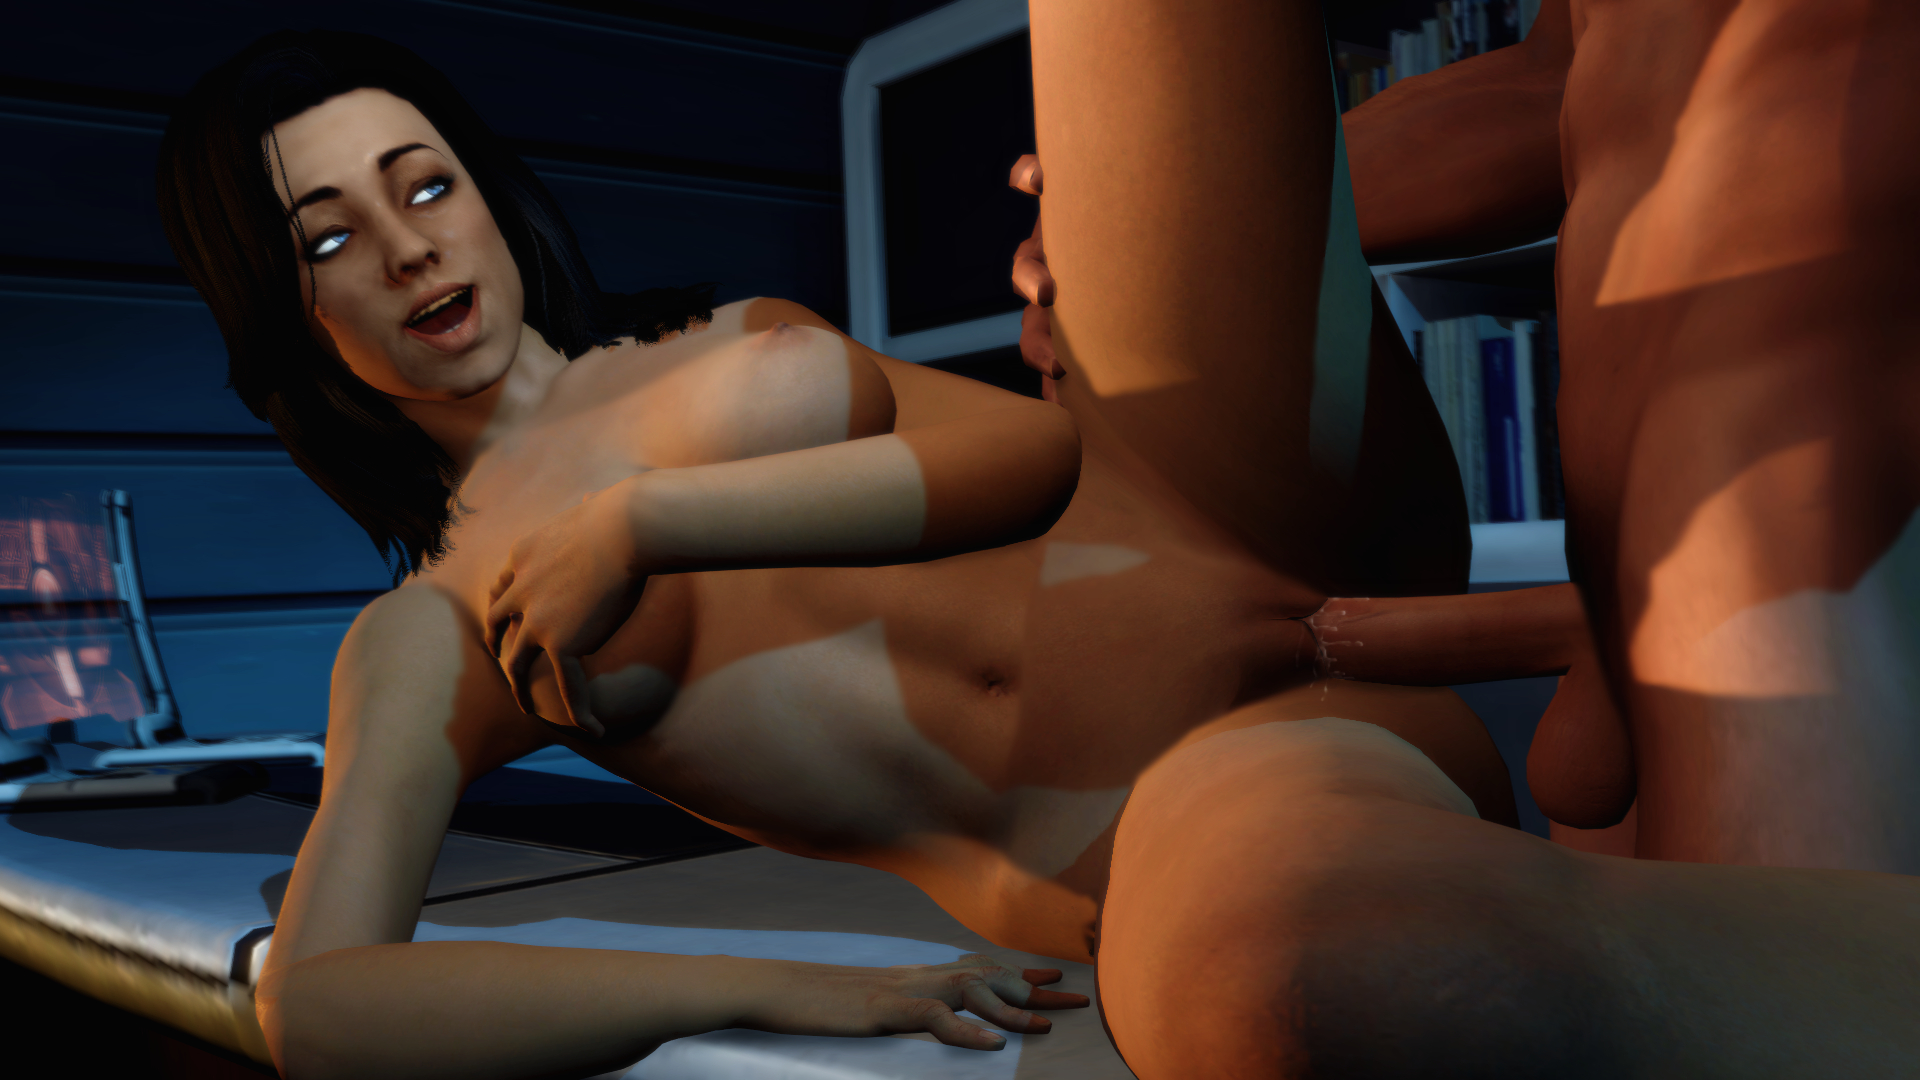 Miranda naked mass effect videos porncraft toons